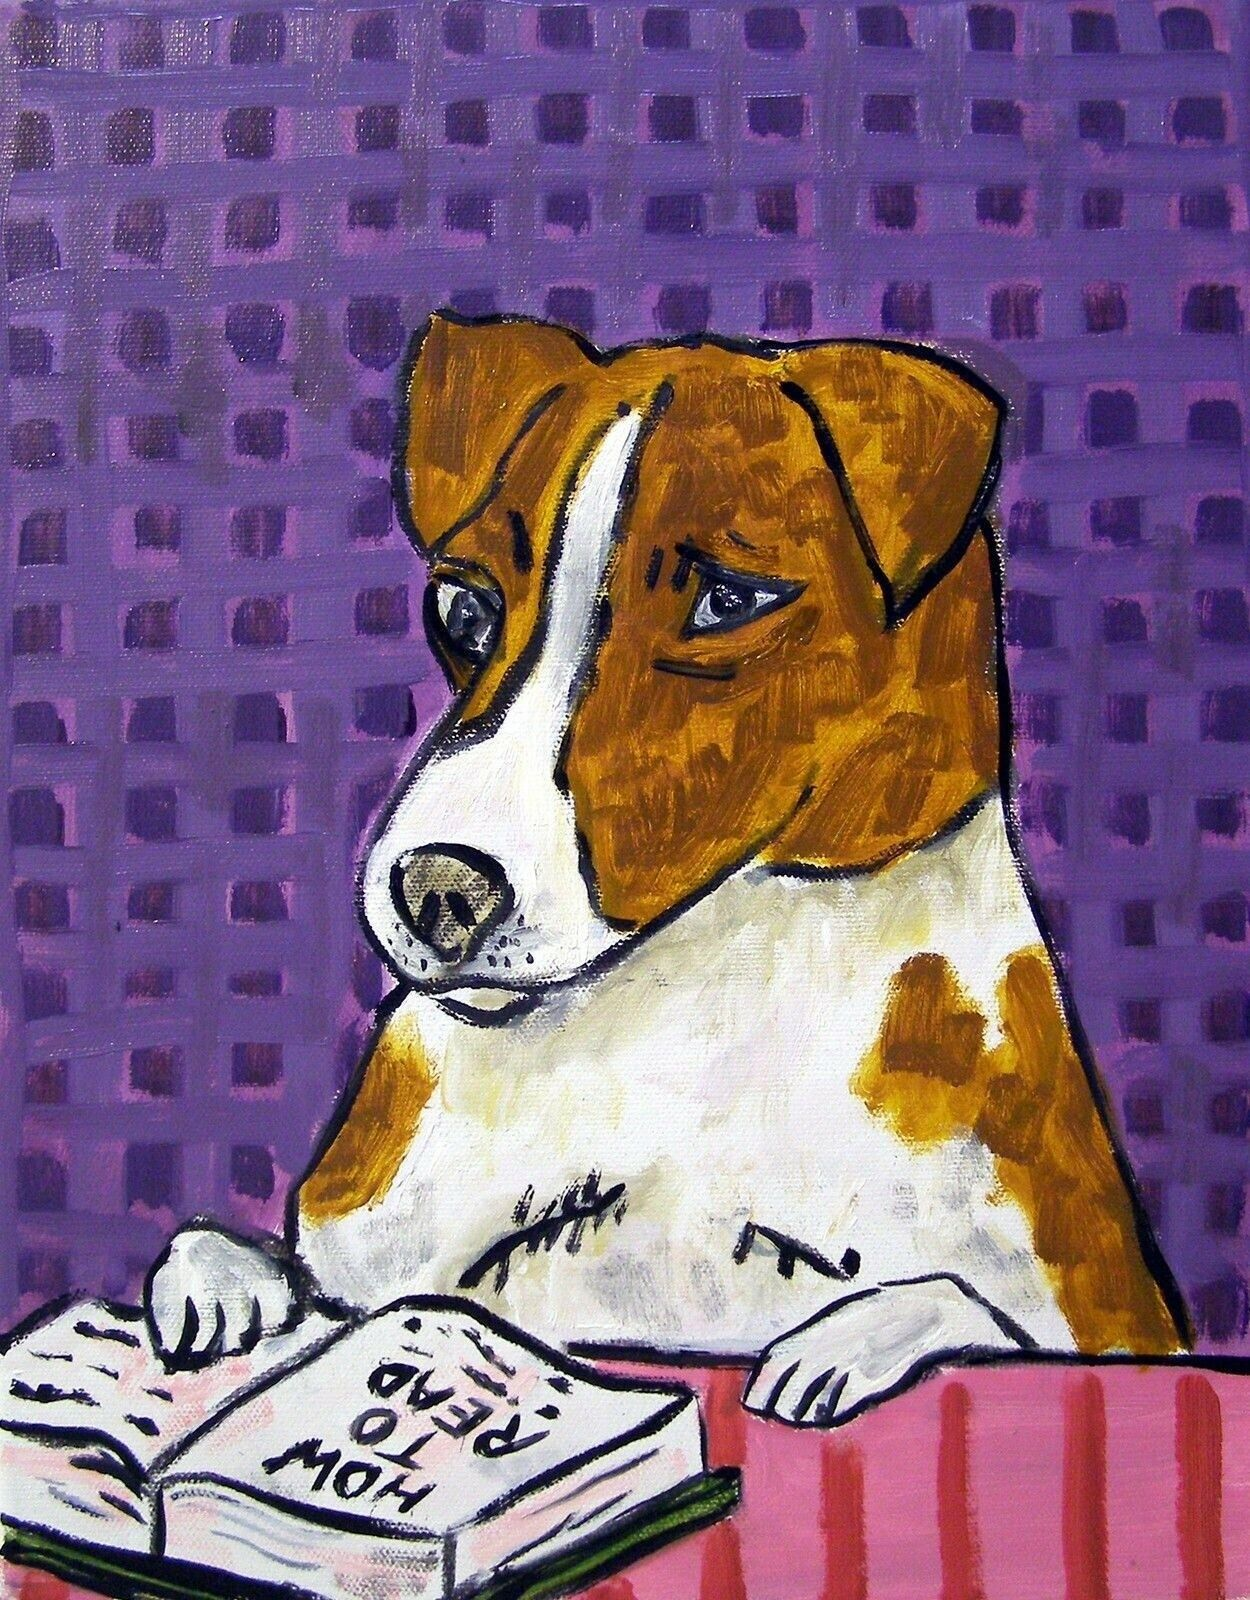 8.5x11 signed JACK RUSSELL TERRIER dog 8x10 signed artist prints animals